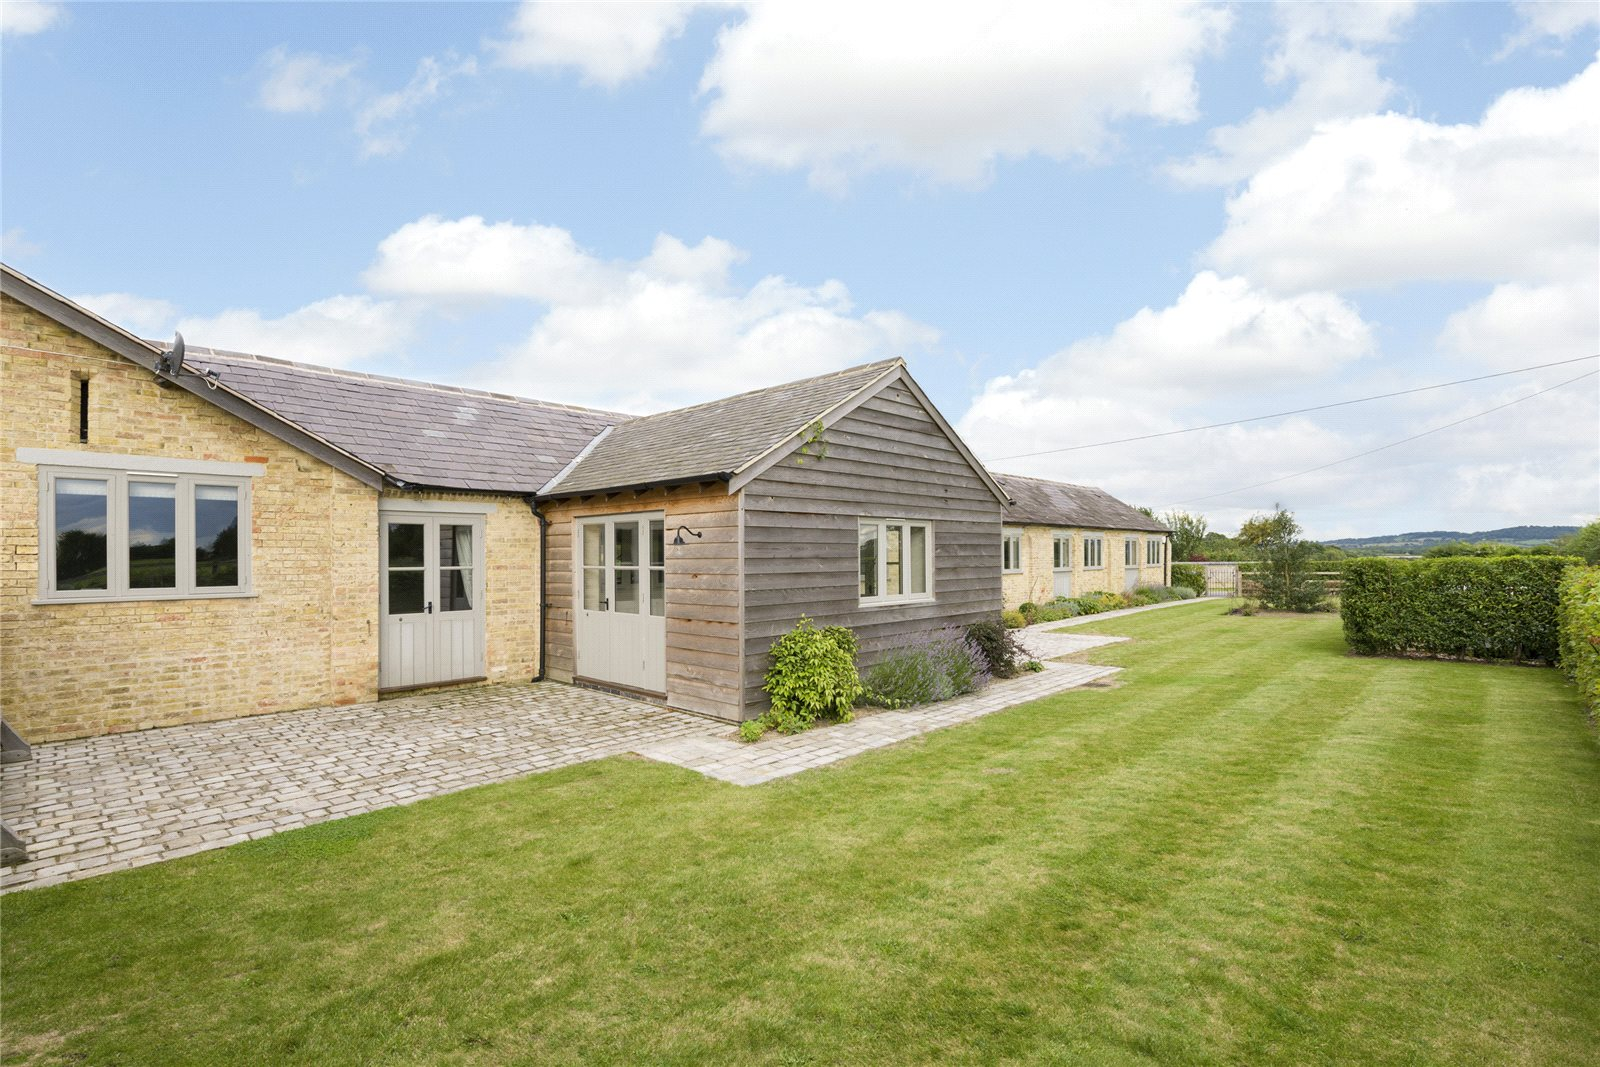 Additional photo for property listing at Chadshunt, Nr Leamington Spa, South Warwickshire, CV35 Angleterre